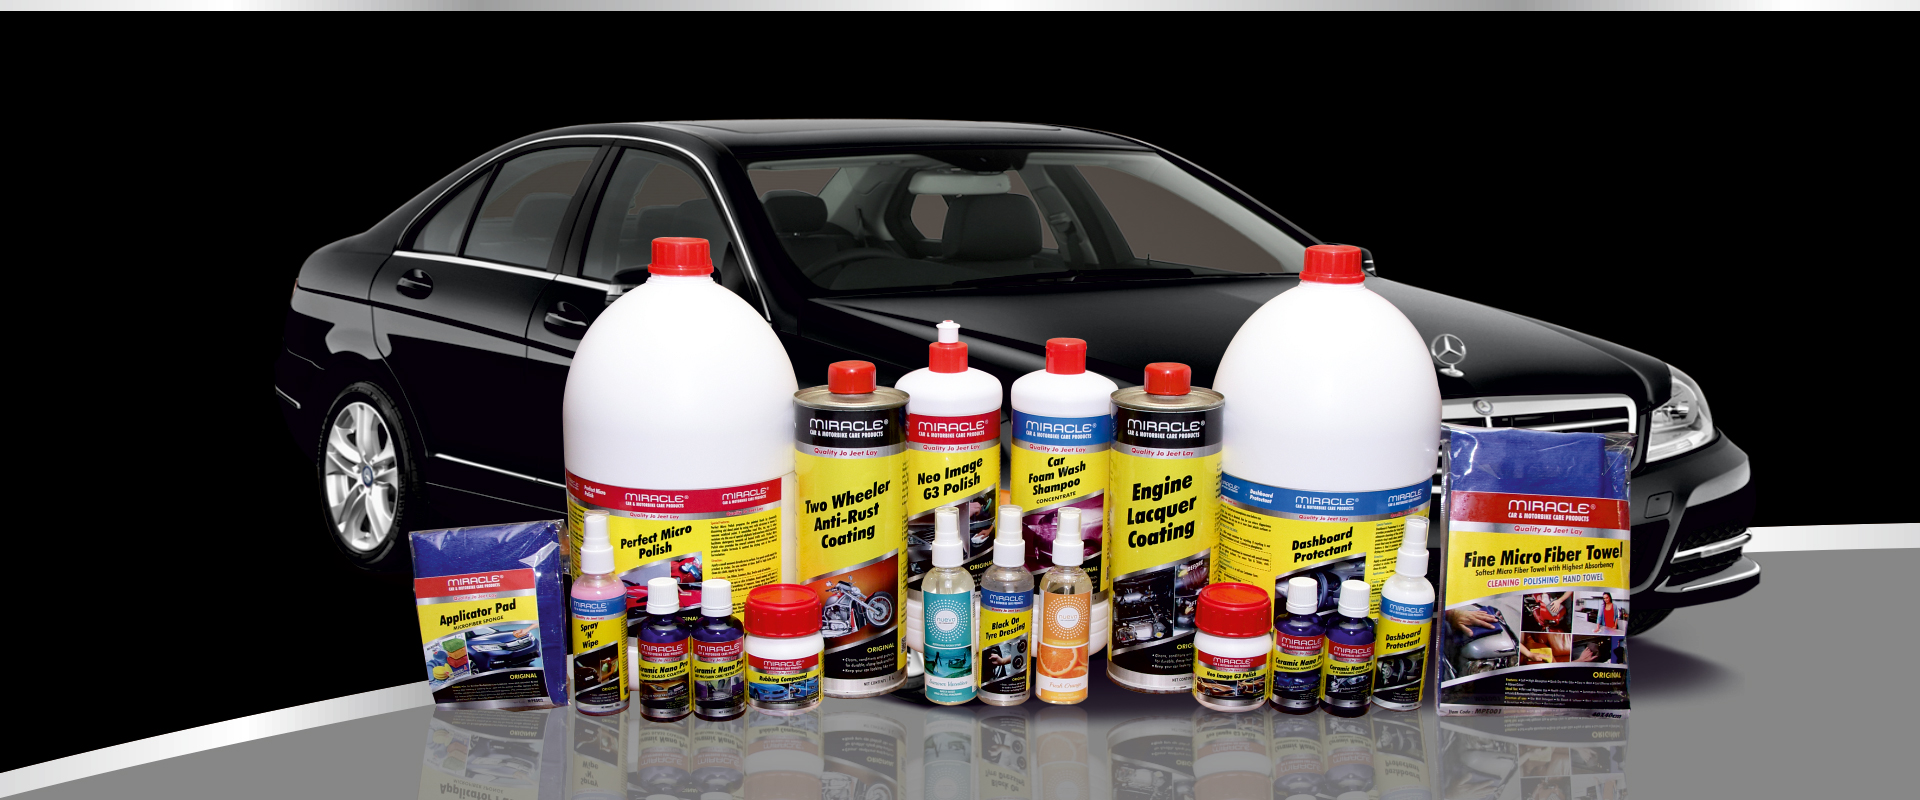 Top Quality Car Care Products for Your Vehicle - Real Time ...